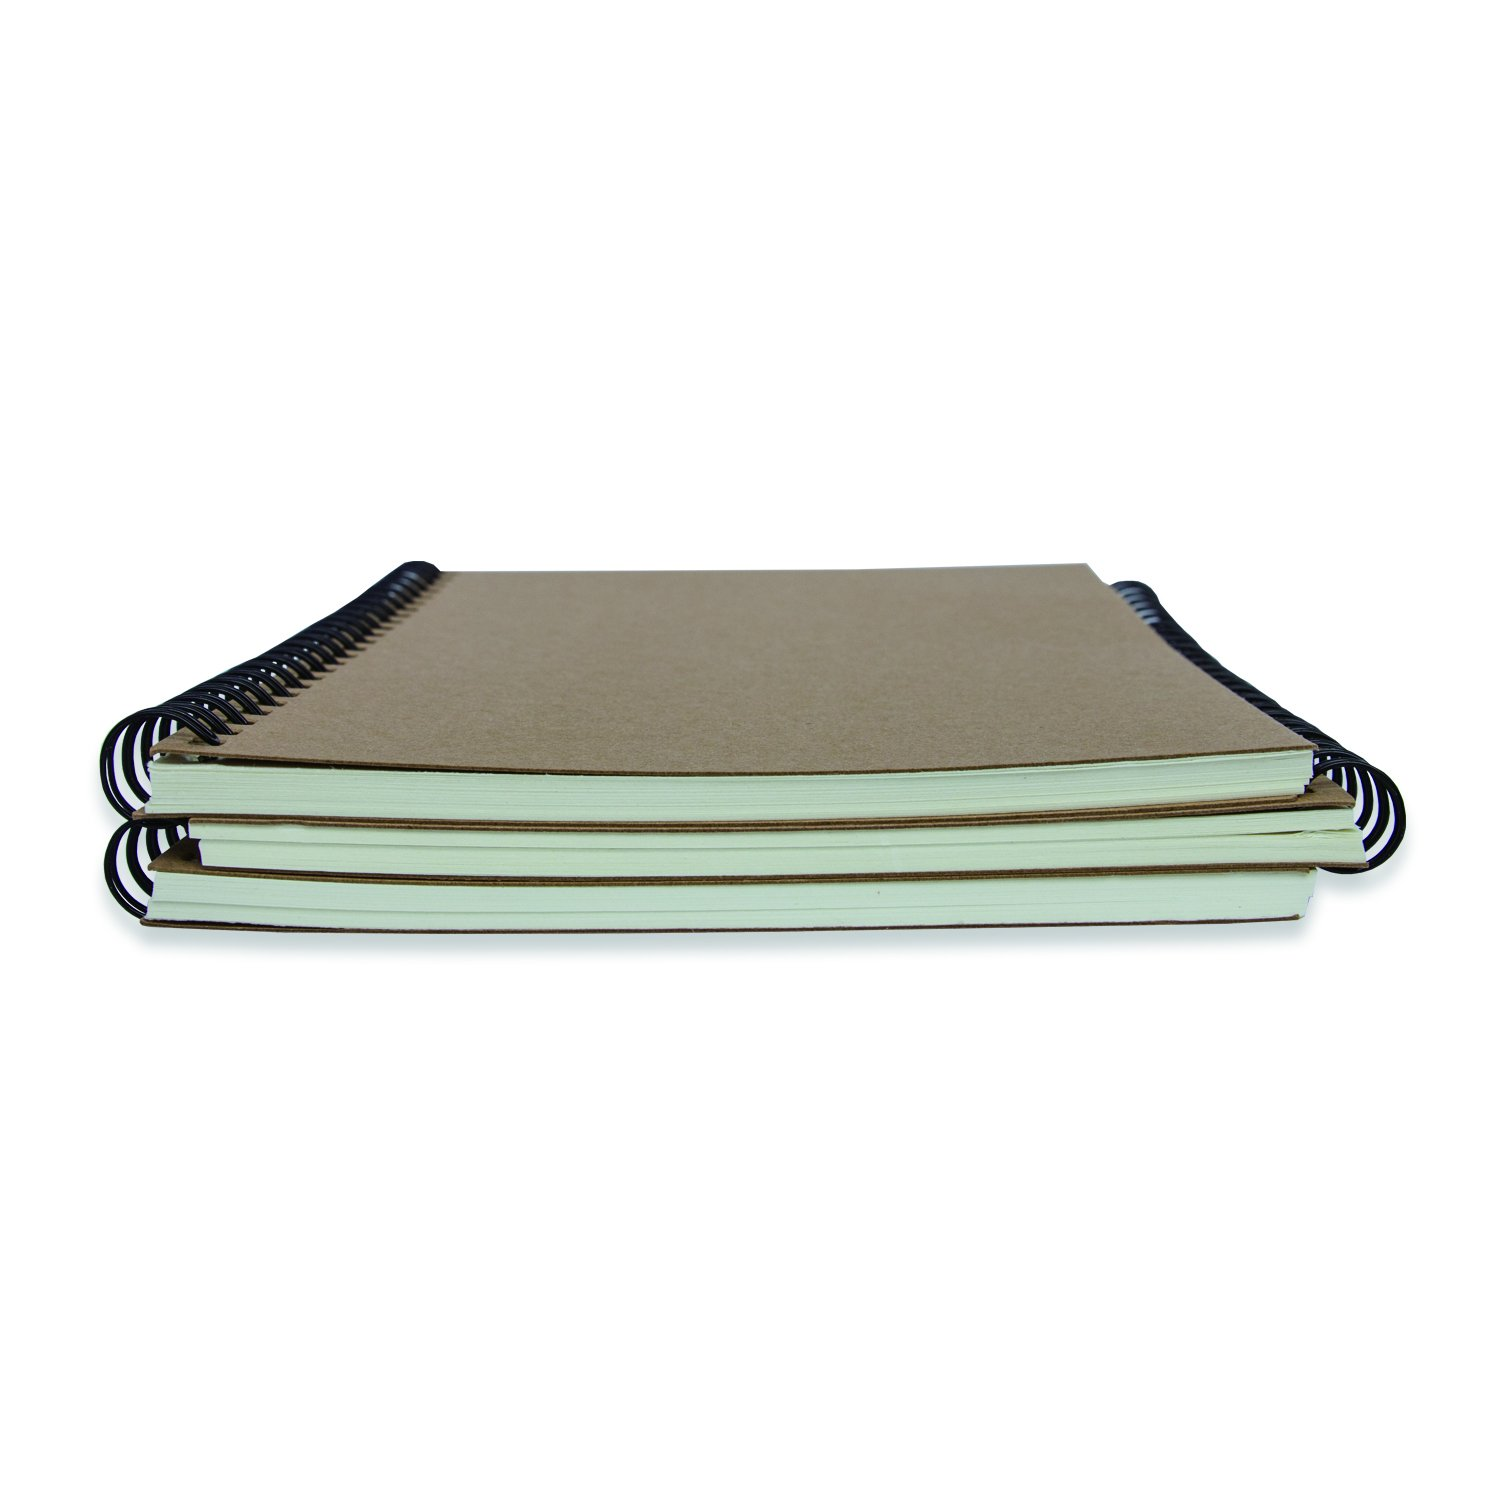 Kraft Paper Cover Notebooks Spiral Notebooks (A5 Size, Set of 3) (Cartwheel Double Iron Ring) by Luck'y stores (Image #3)